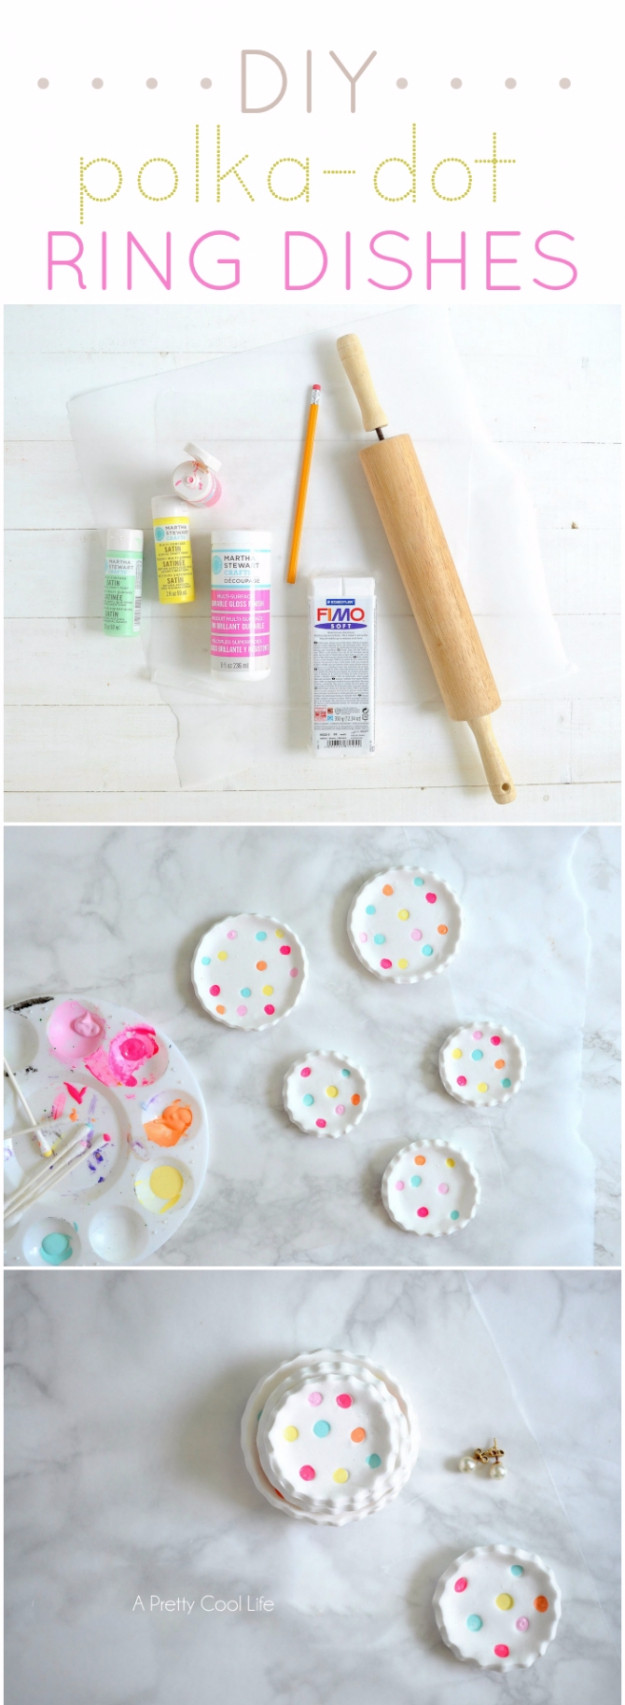 Best ideas about Cheap Crafts For Adults . Save or Pin 55 Cheap Crafts to Make and Sell Now.